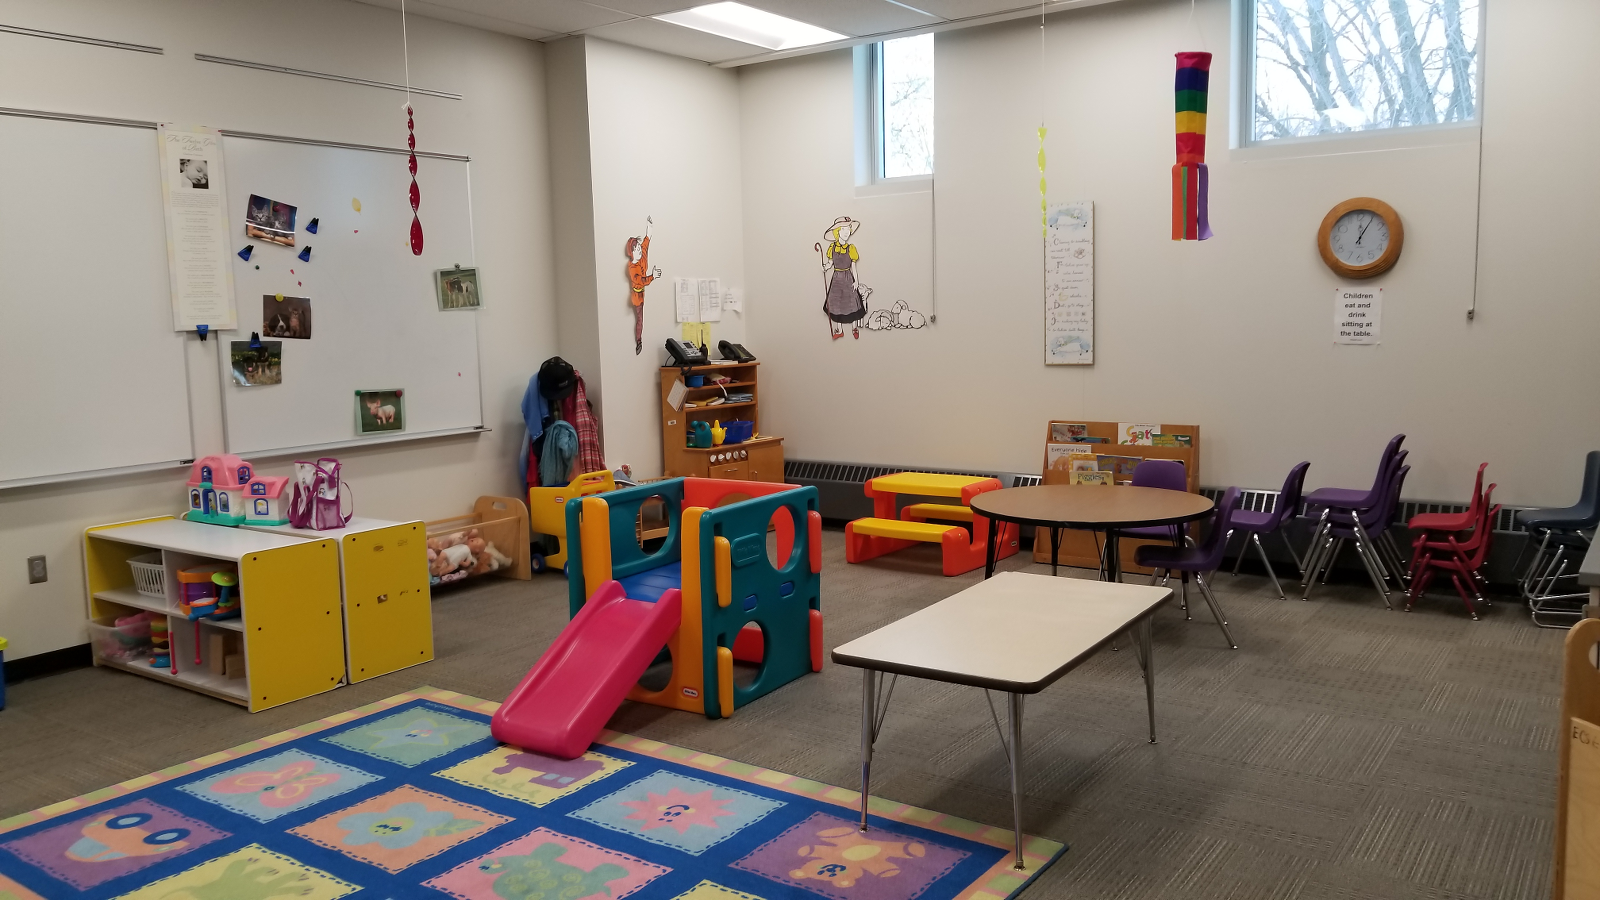 Free Drop-in Childcare is provided for children ages 3 months through 9 years of age at certain times during the week.